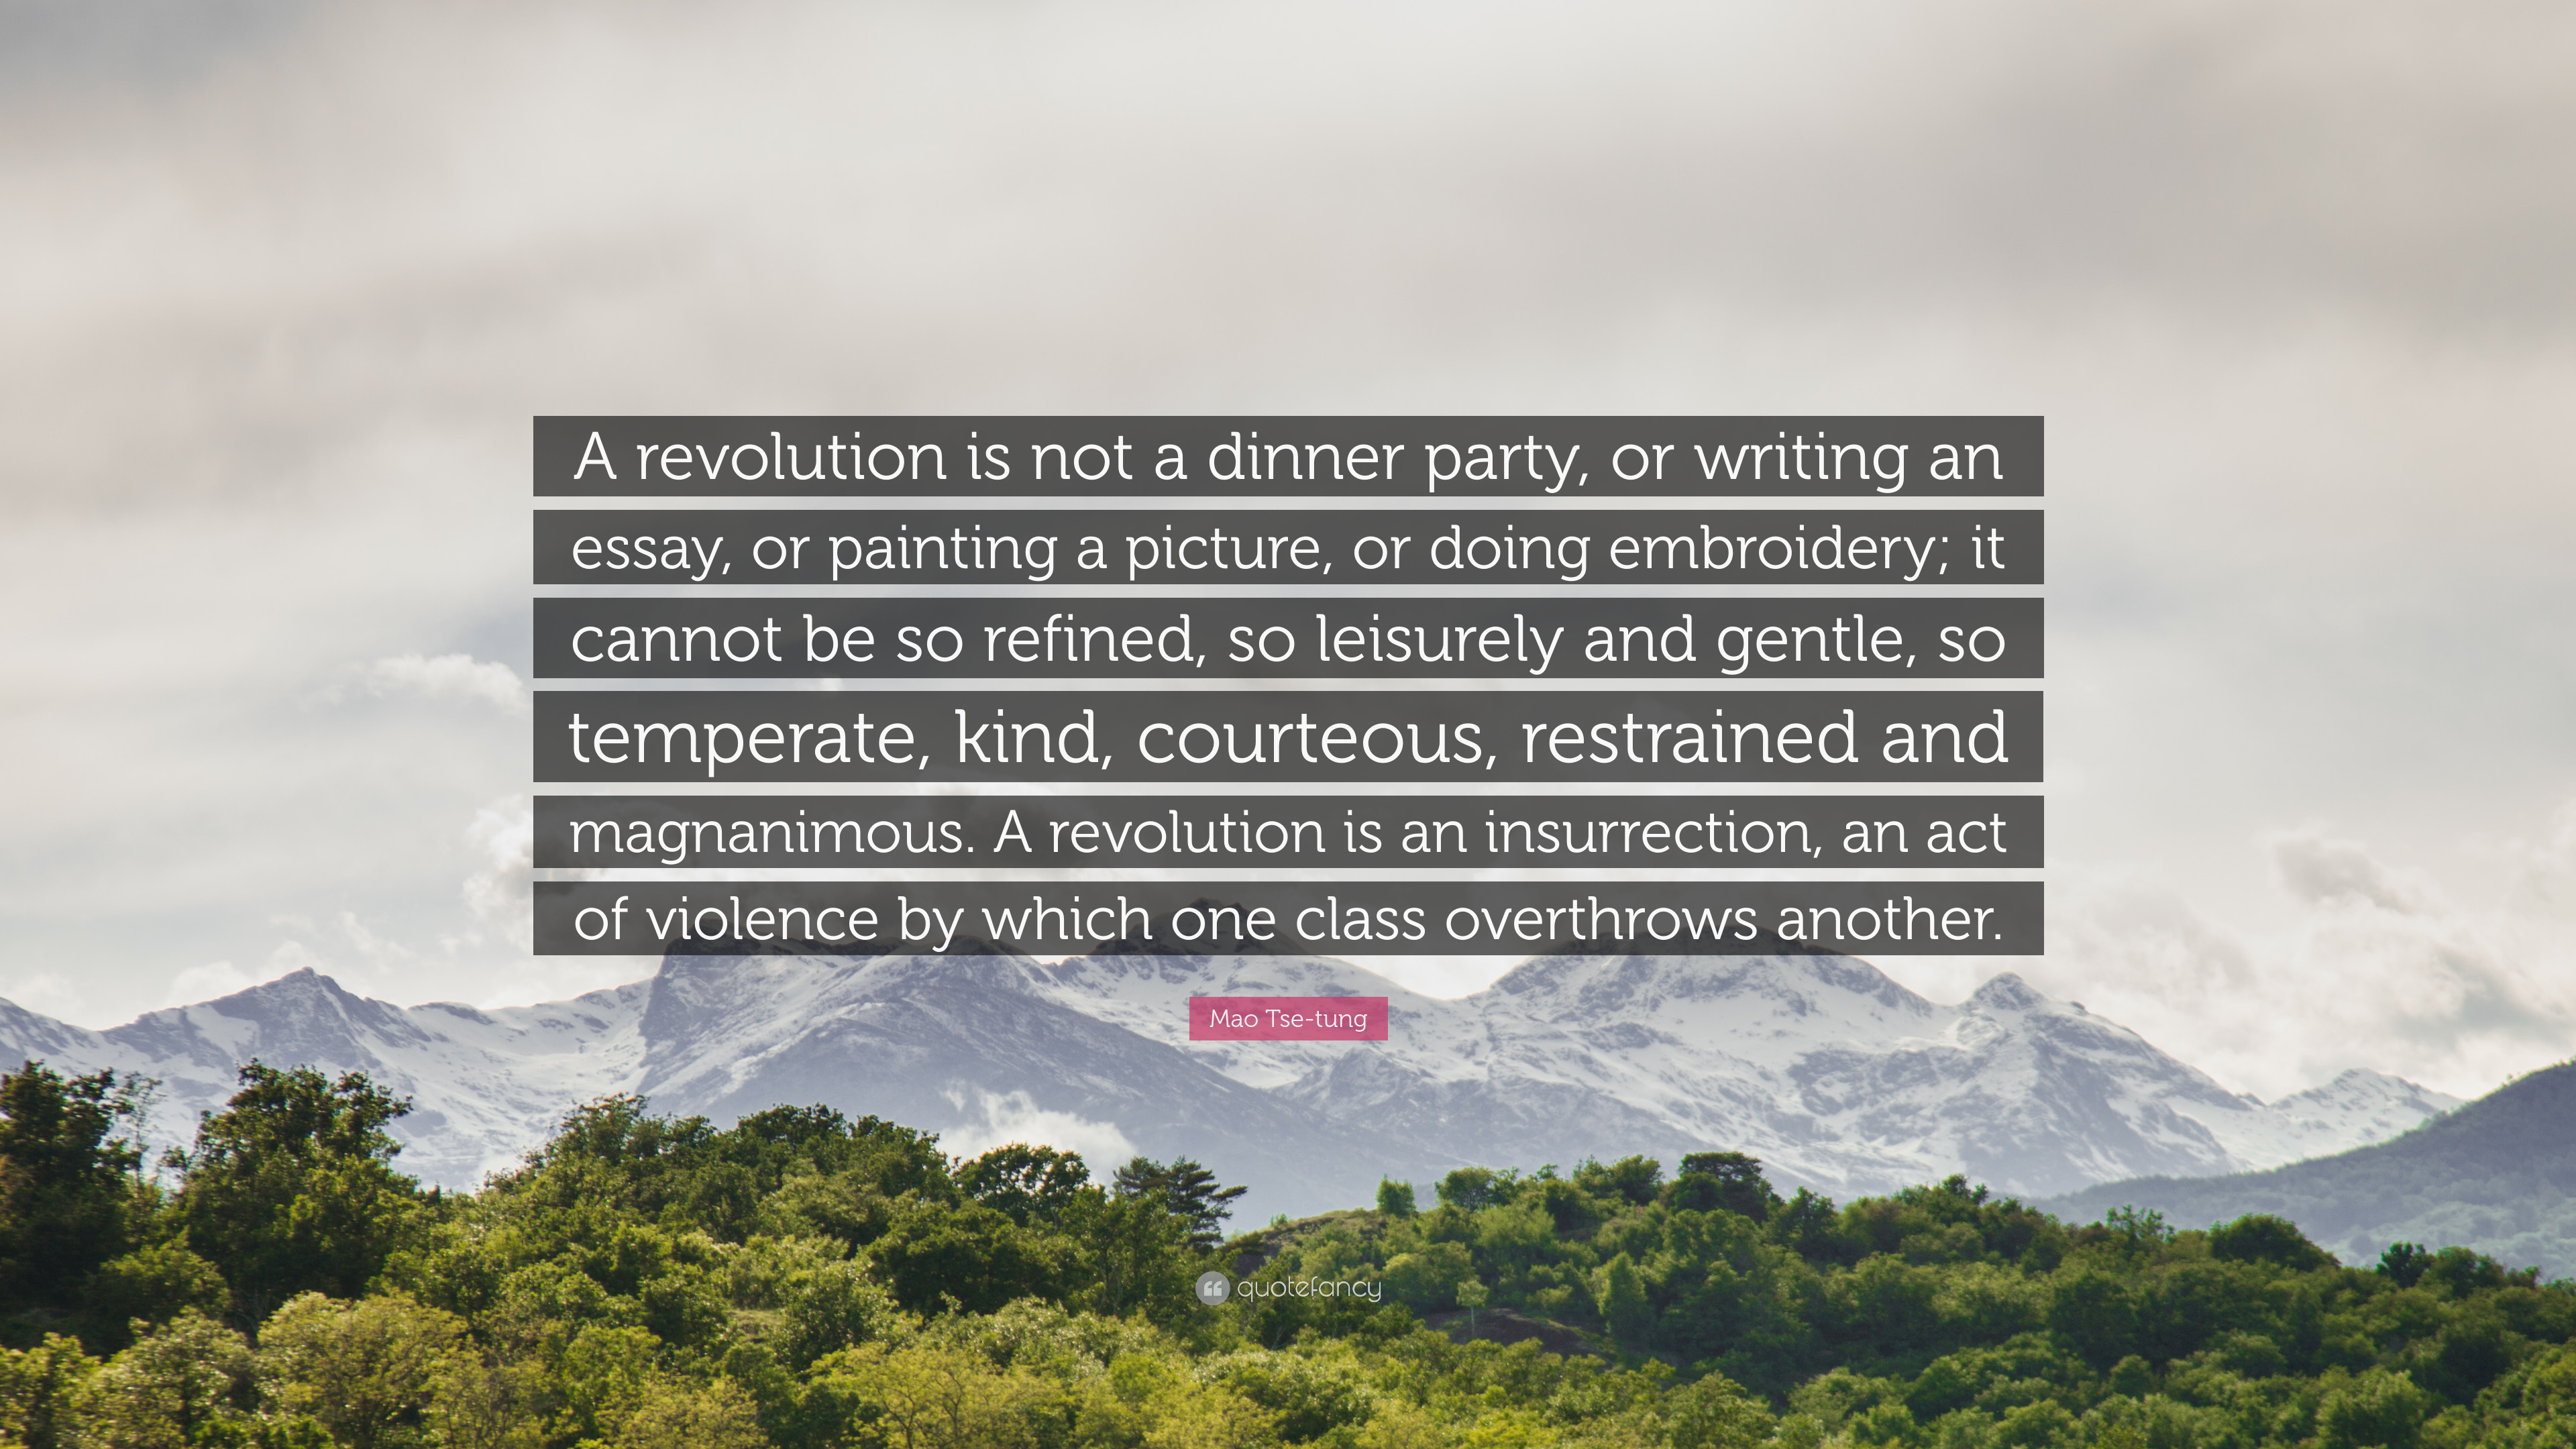 mao zedong essay college essays college application essays mao  mao tse tung quotes quotefancy mao tse tung quote ldquoa revolution is not a dinner party